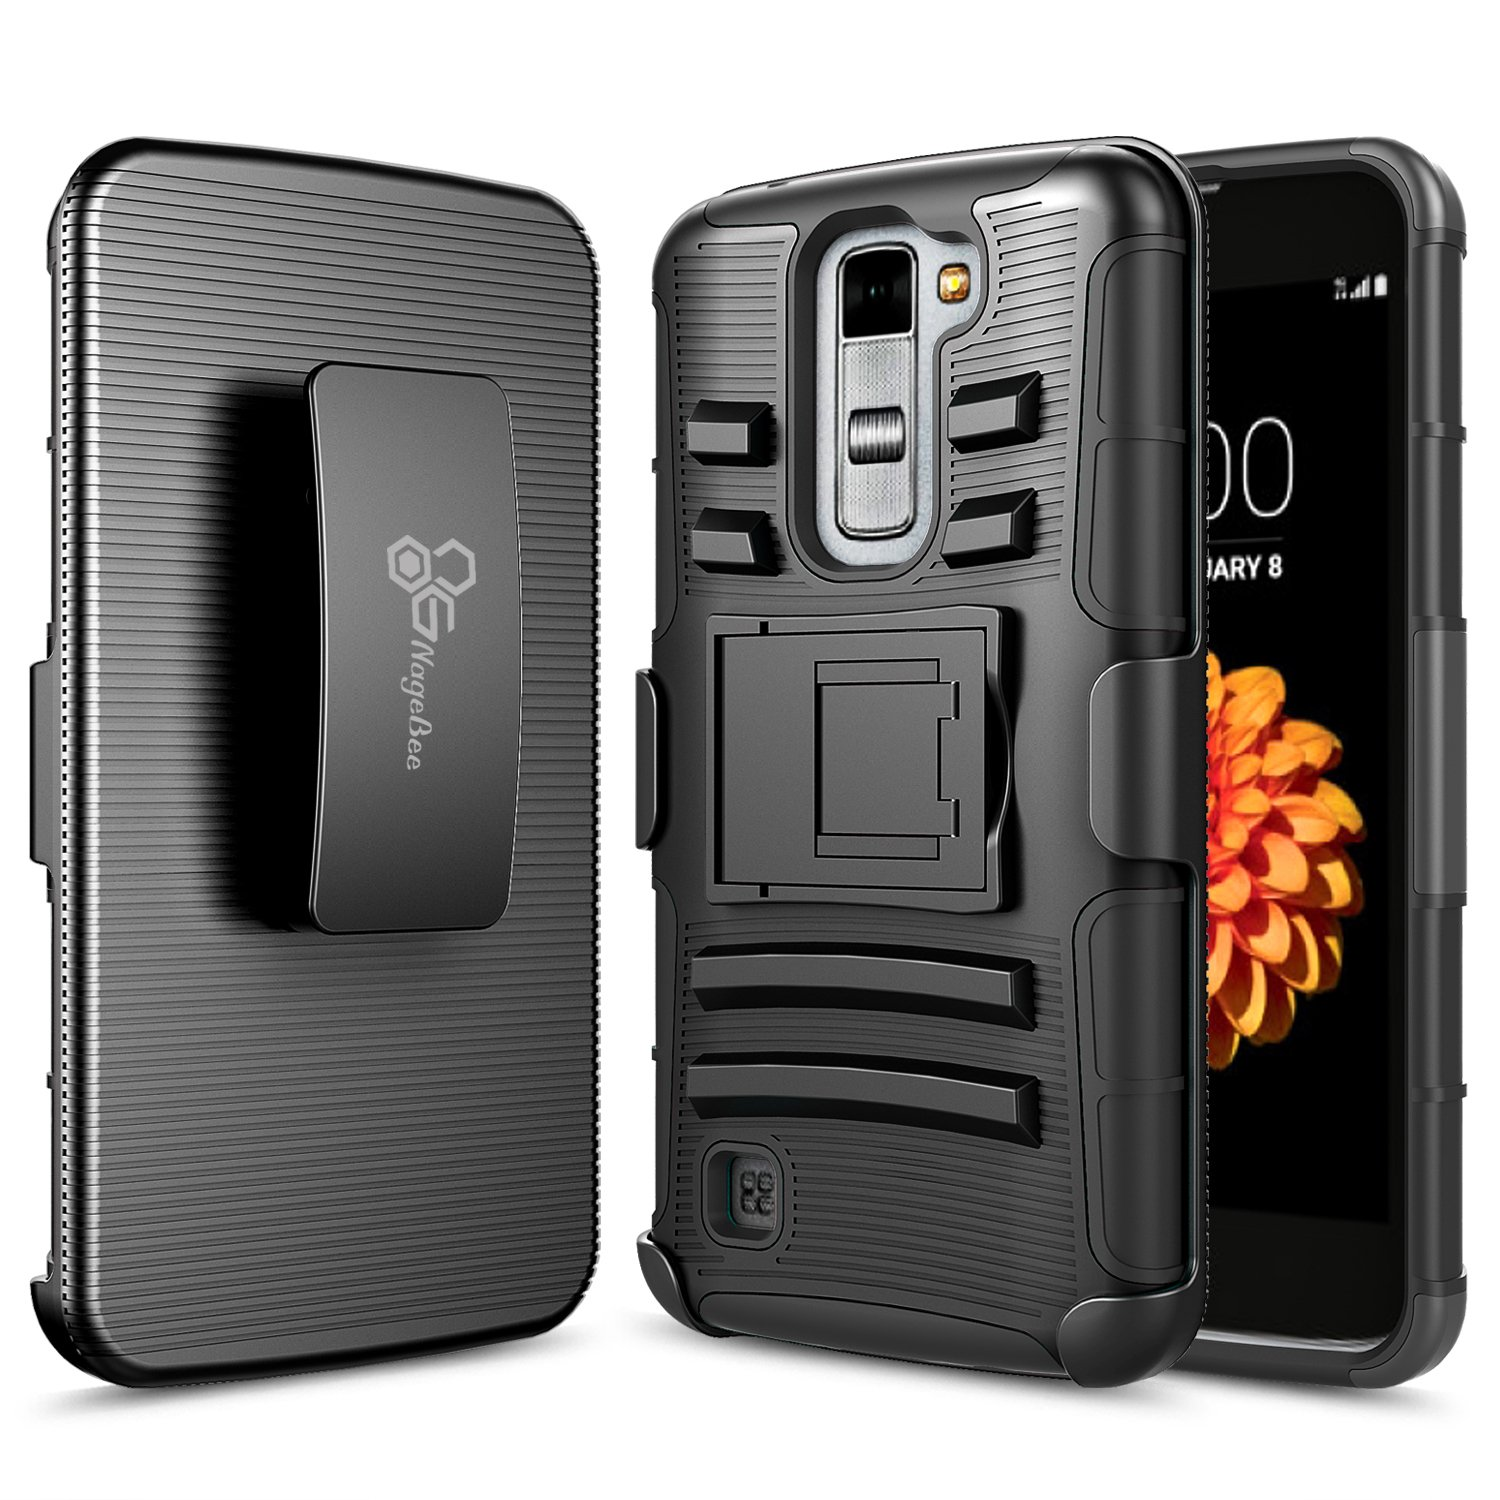 Lg K10 Case, Lg Premier Lte L62 Vl L61 Al Case, Nage Bee [Heavy Duty] Armor Shock Proof Dual Layer [Swivel Belt Clip] Holster With [Kickstand] Combo Rugged Case   Black by Nage Bee